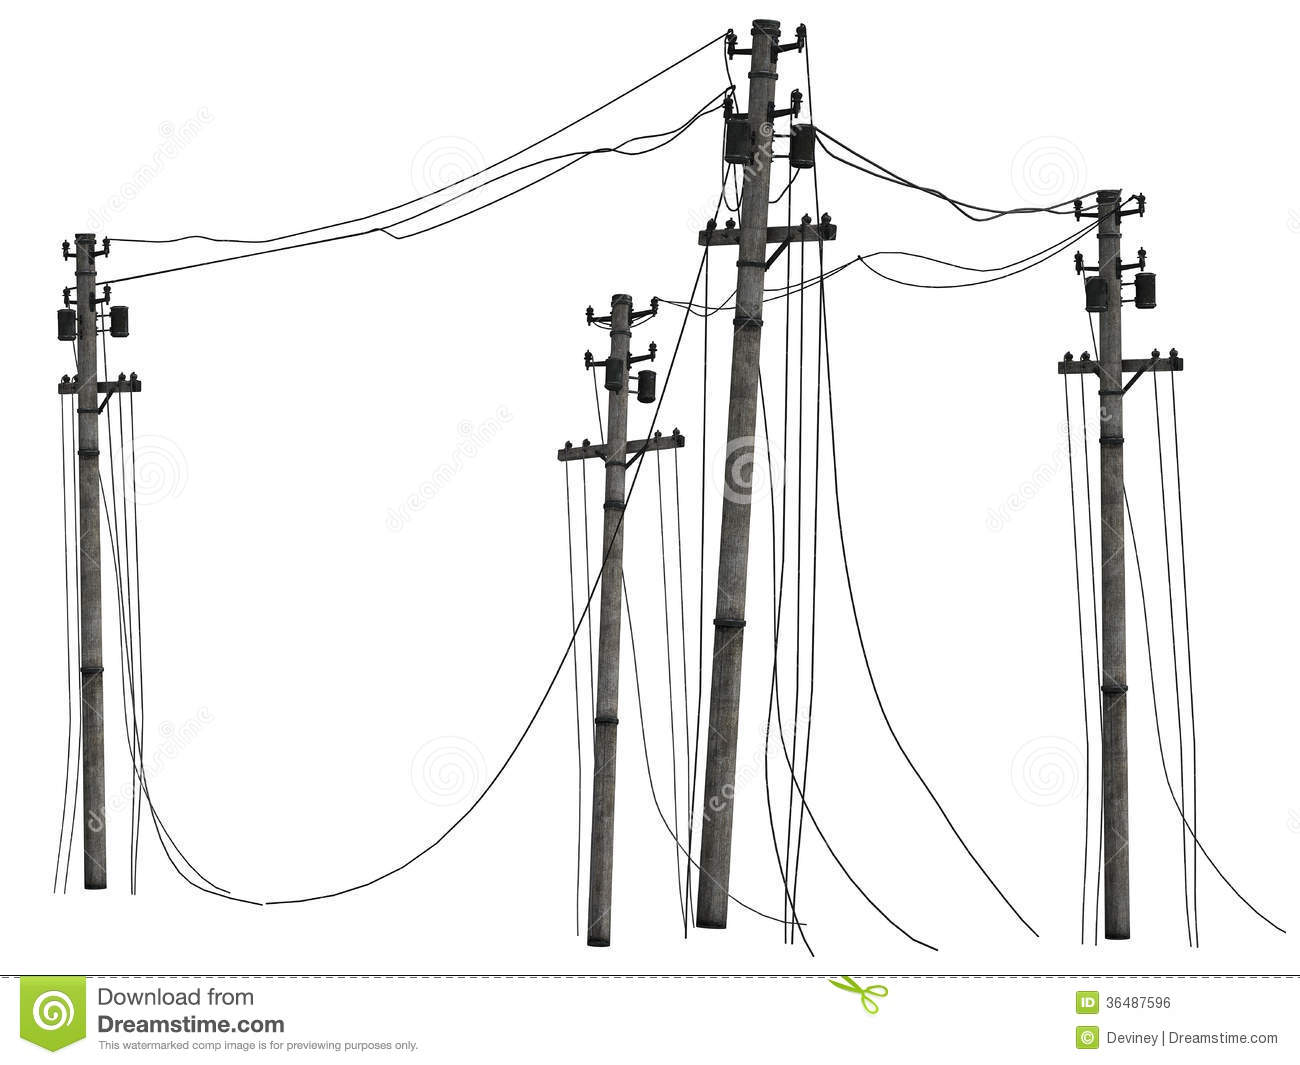 Electric Utility Pole Transformers | Wiring Diagram Database on doorbell electrical schematics, transformer headlights, cell phone schematics, guitar amp schematics, transformer drawings, kt88 tube amplifier schematics, transformer science, transformer chart, transformer electrical, transformer blowing up, transformer installation, double ended power supply schematics, dynamo schematics, transformer power, schumacher battery charger circuit schematics,